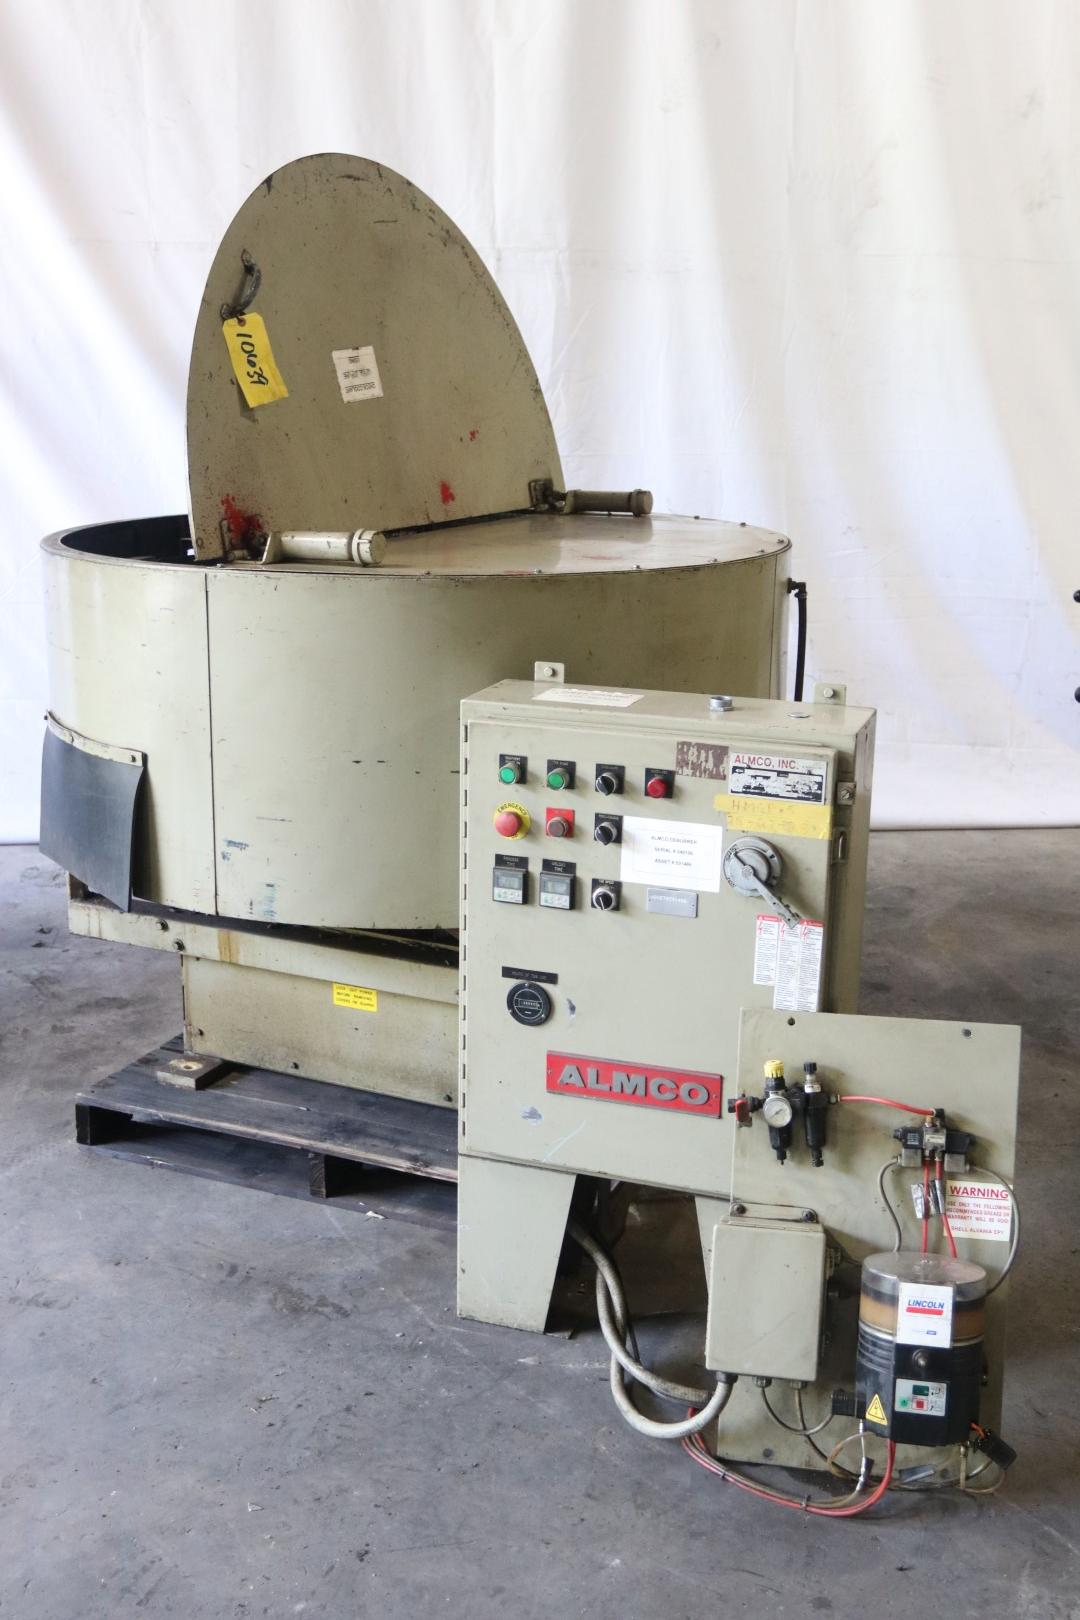 4.2 CU FT ALMCO MODEL #OR-5VLR ROTARY VIBRATORY FINISHER: STOCK 10639